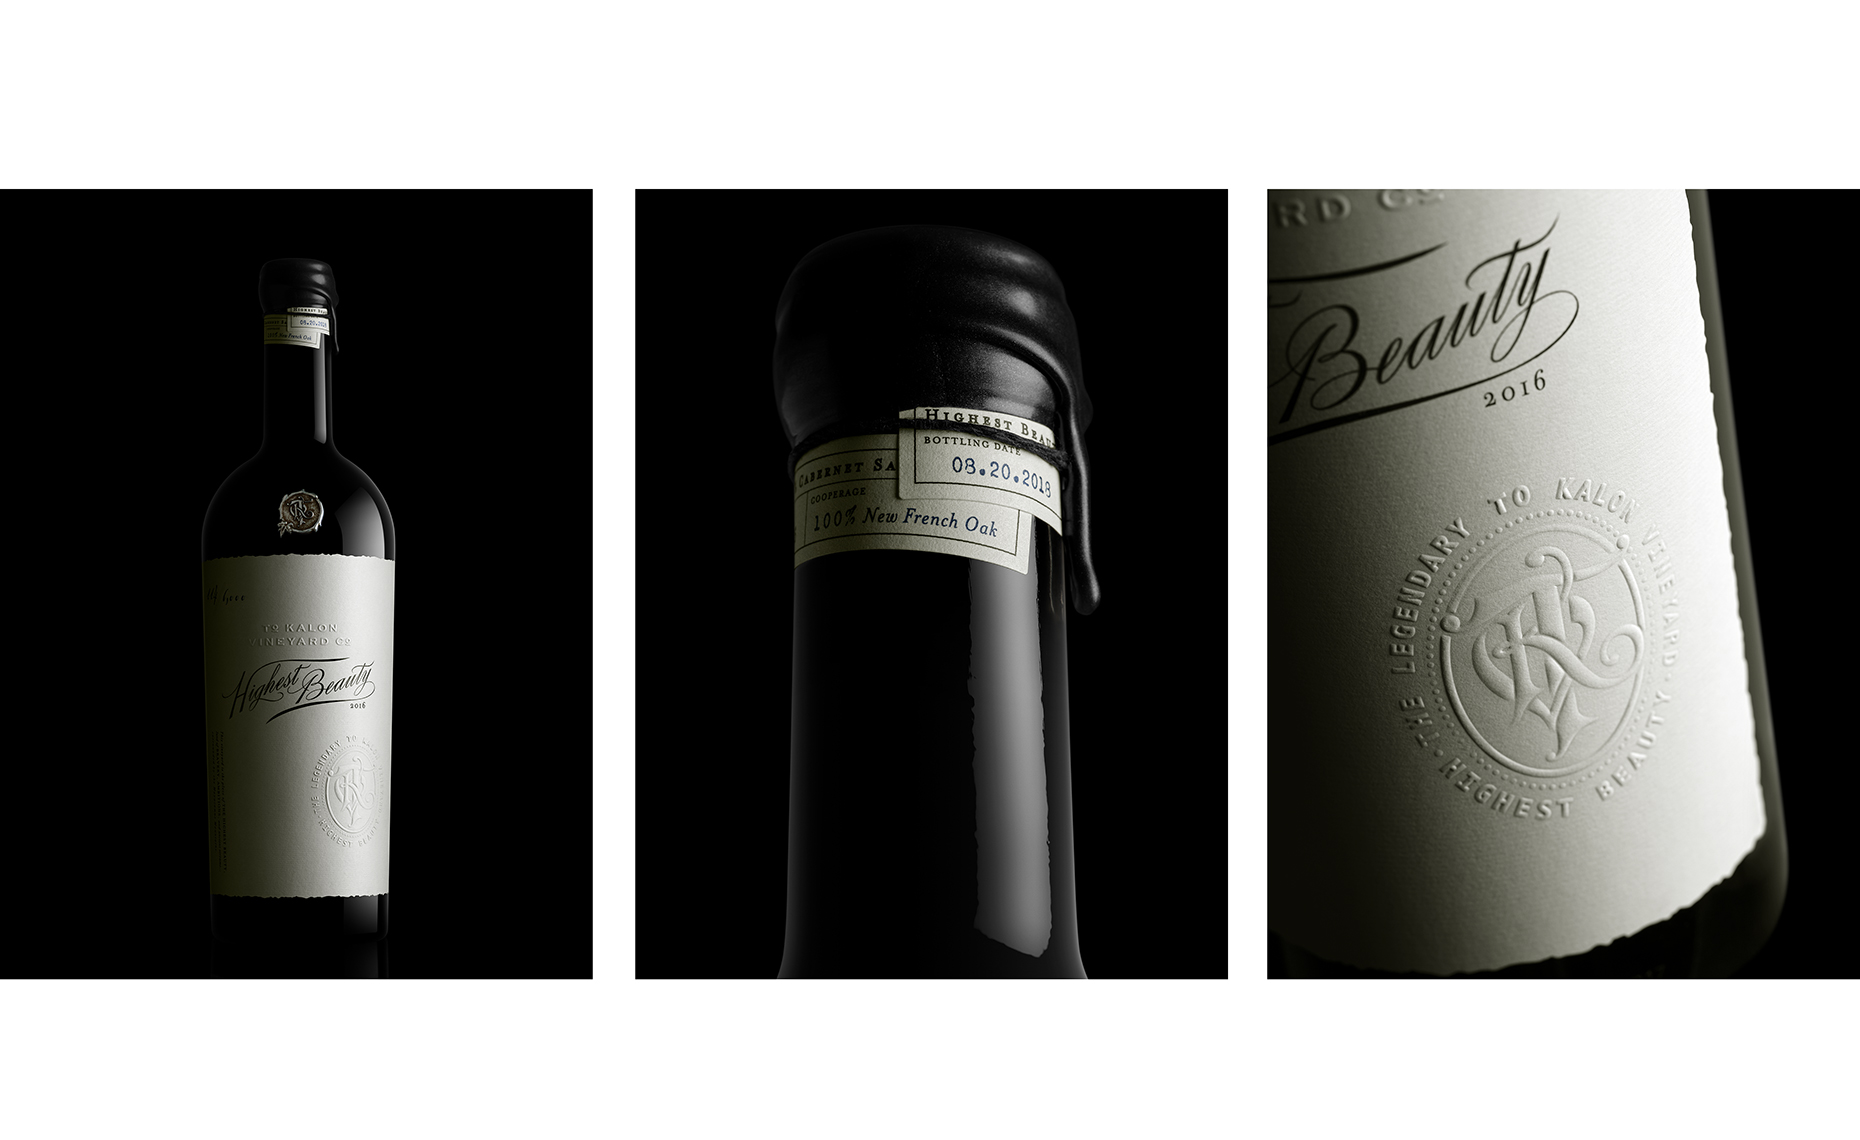 Red Productions Product & Still Life Photography To Kalon Cabernet Sauvignon